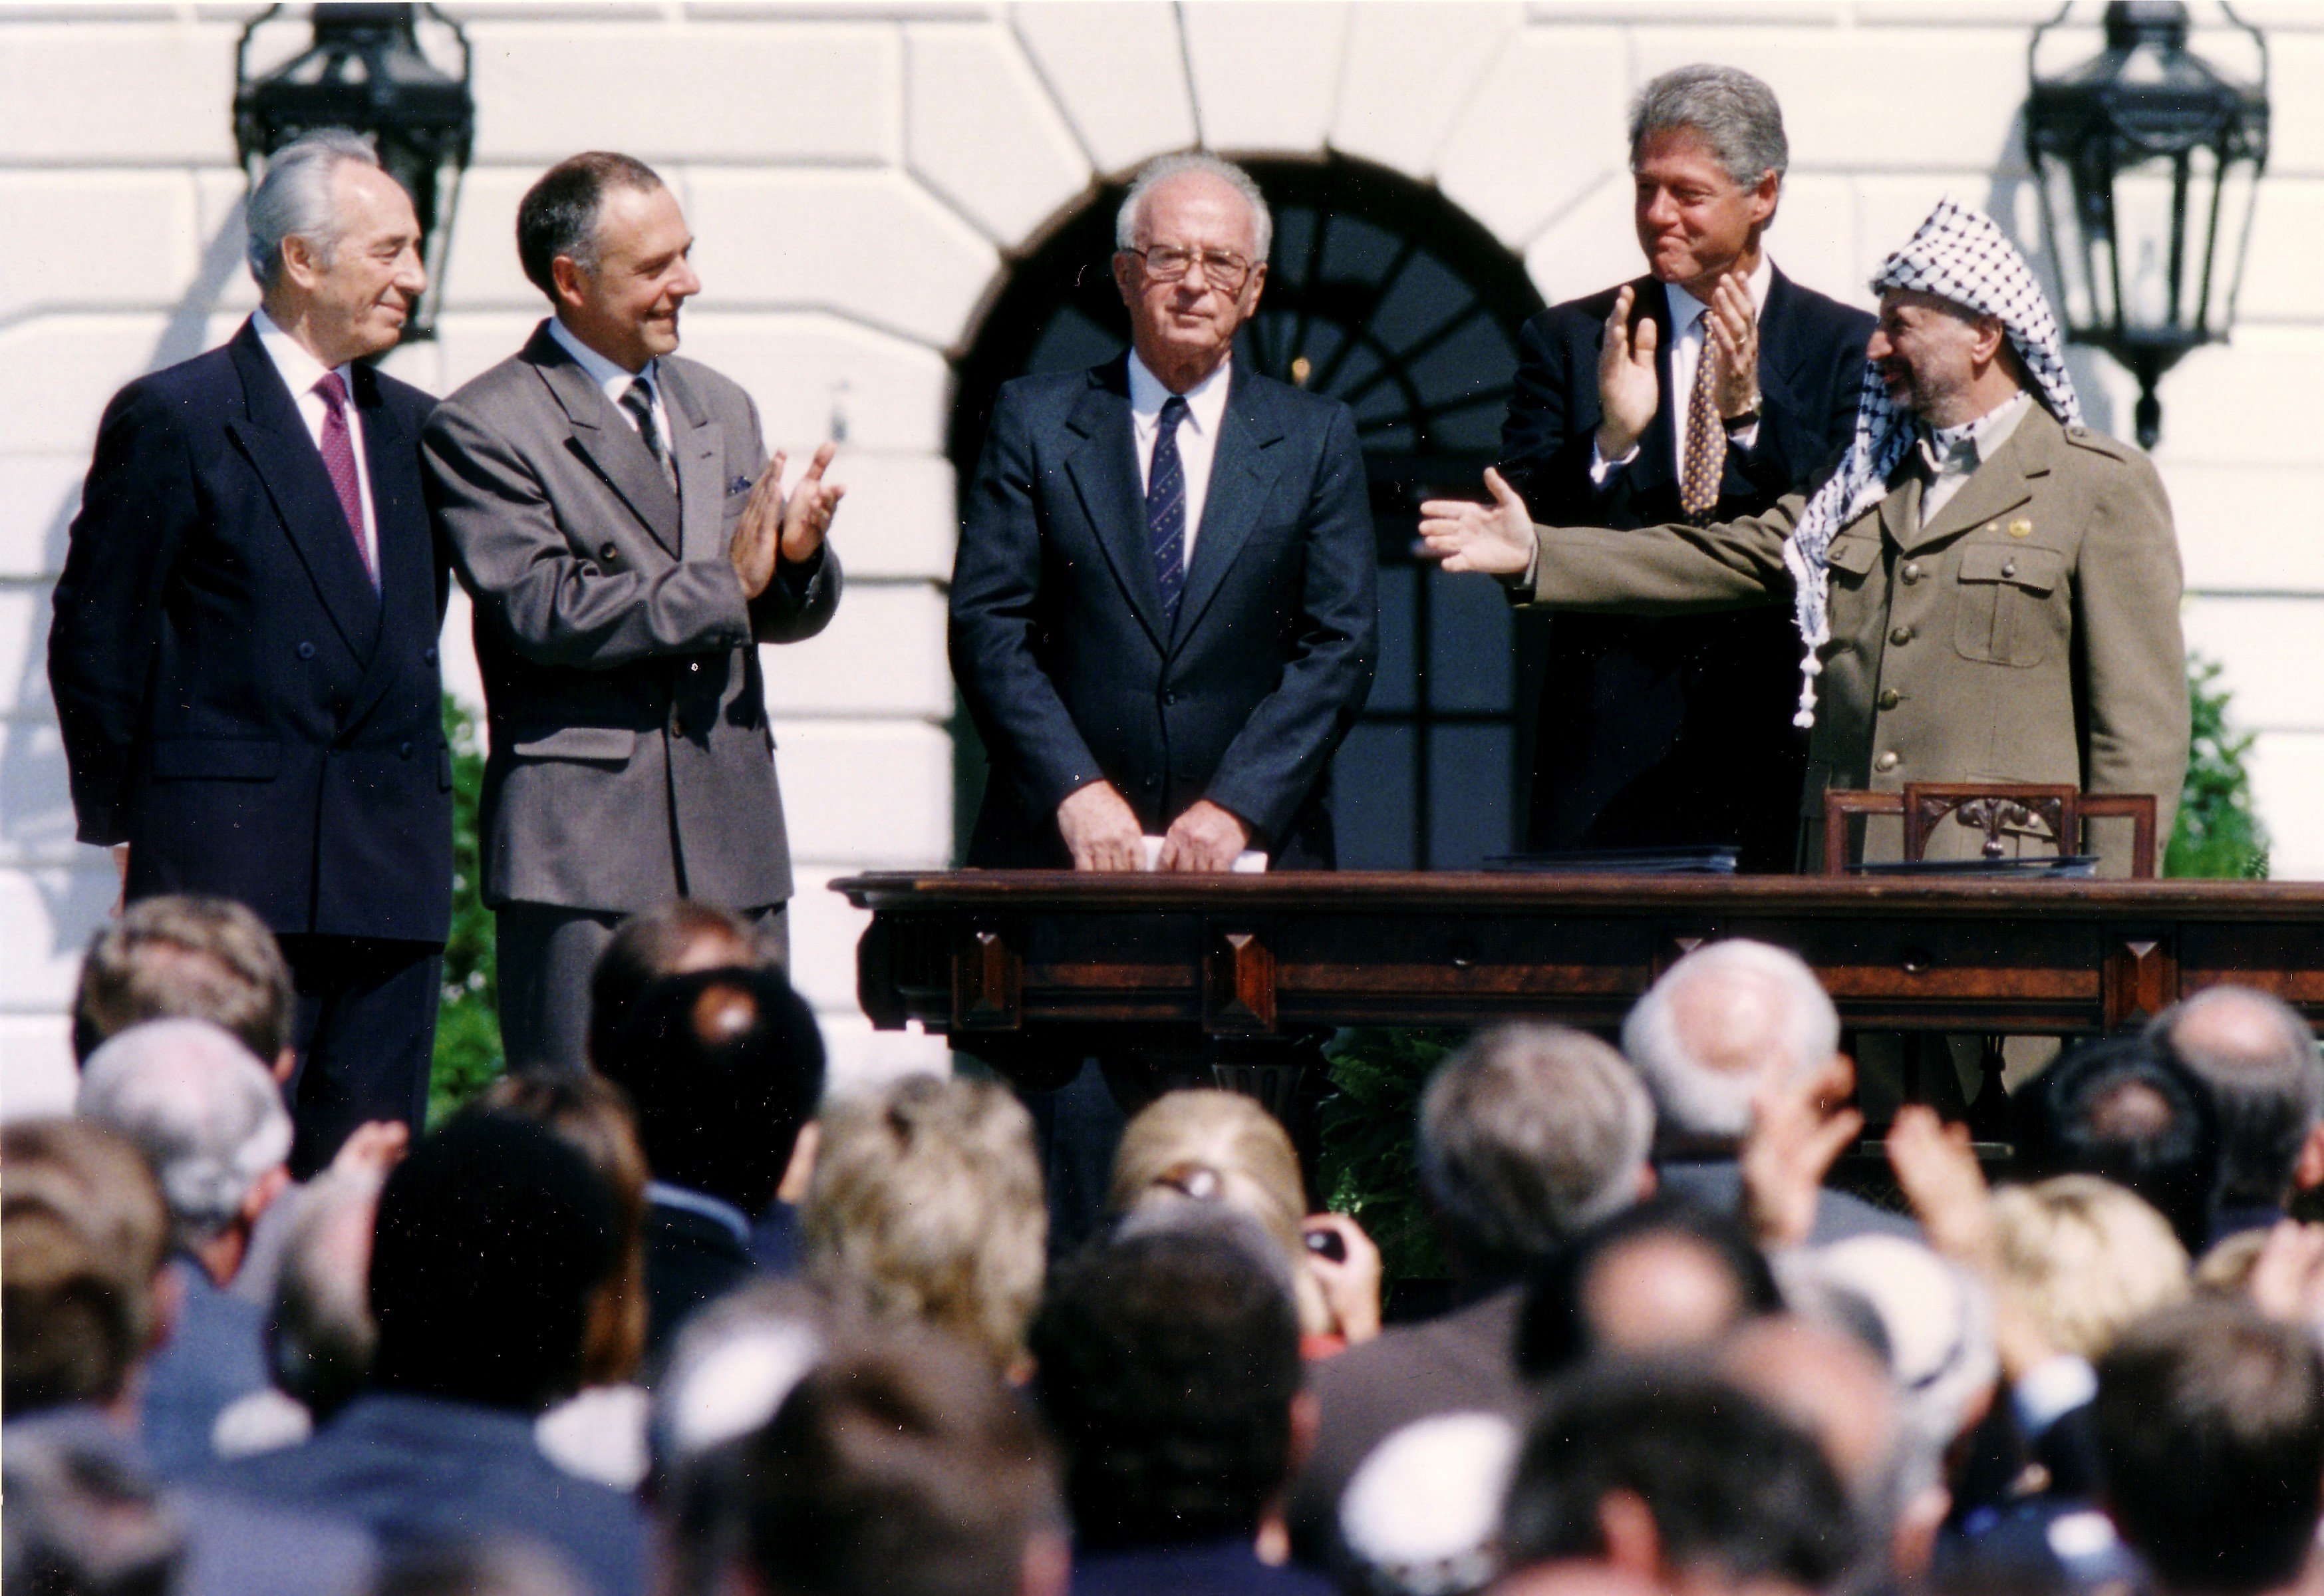 PLO Chairman Yasser Arafat (R) gestures to Israeli Prime Minister Yitzhak Rabin (3rd R), as US President Bill Clinton (2nd R) stands between them at the White House on 13 September, 1993 (Reuters)